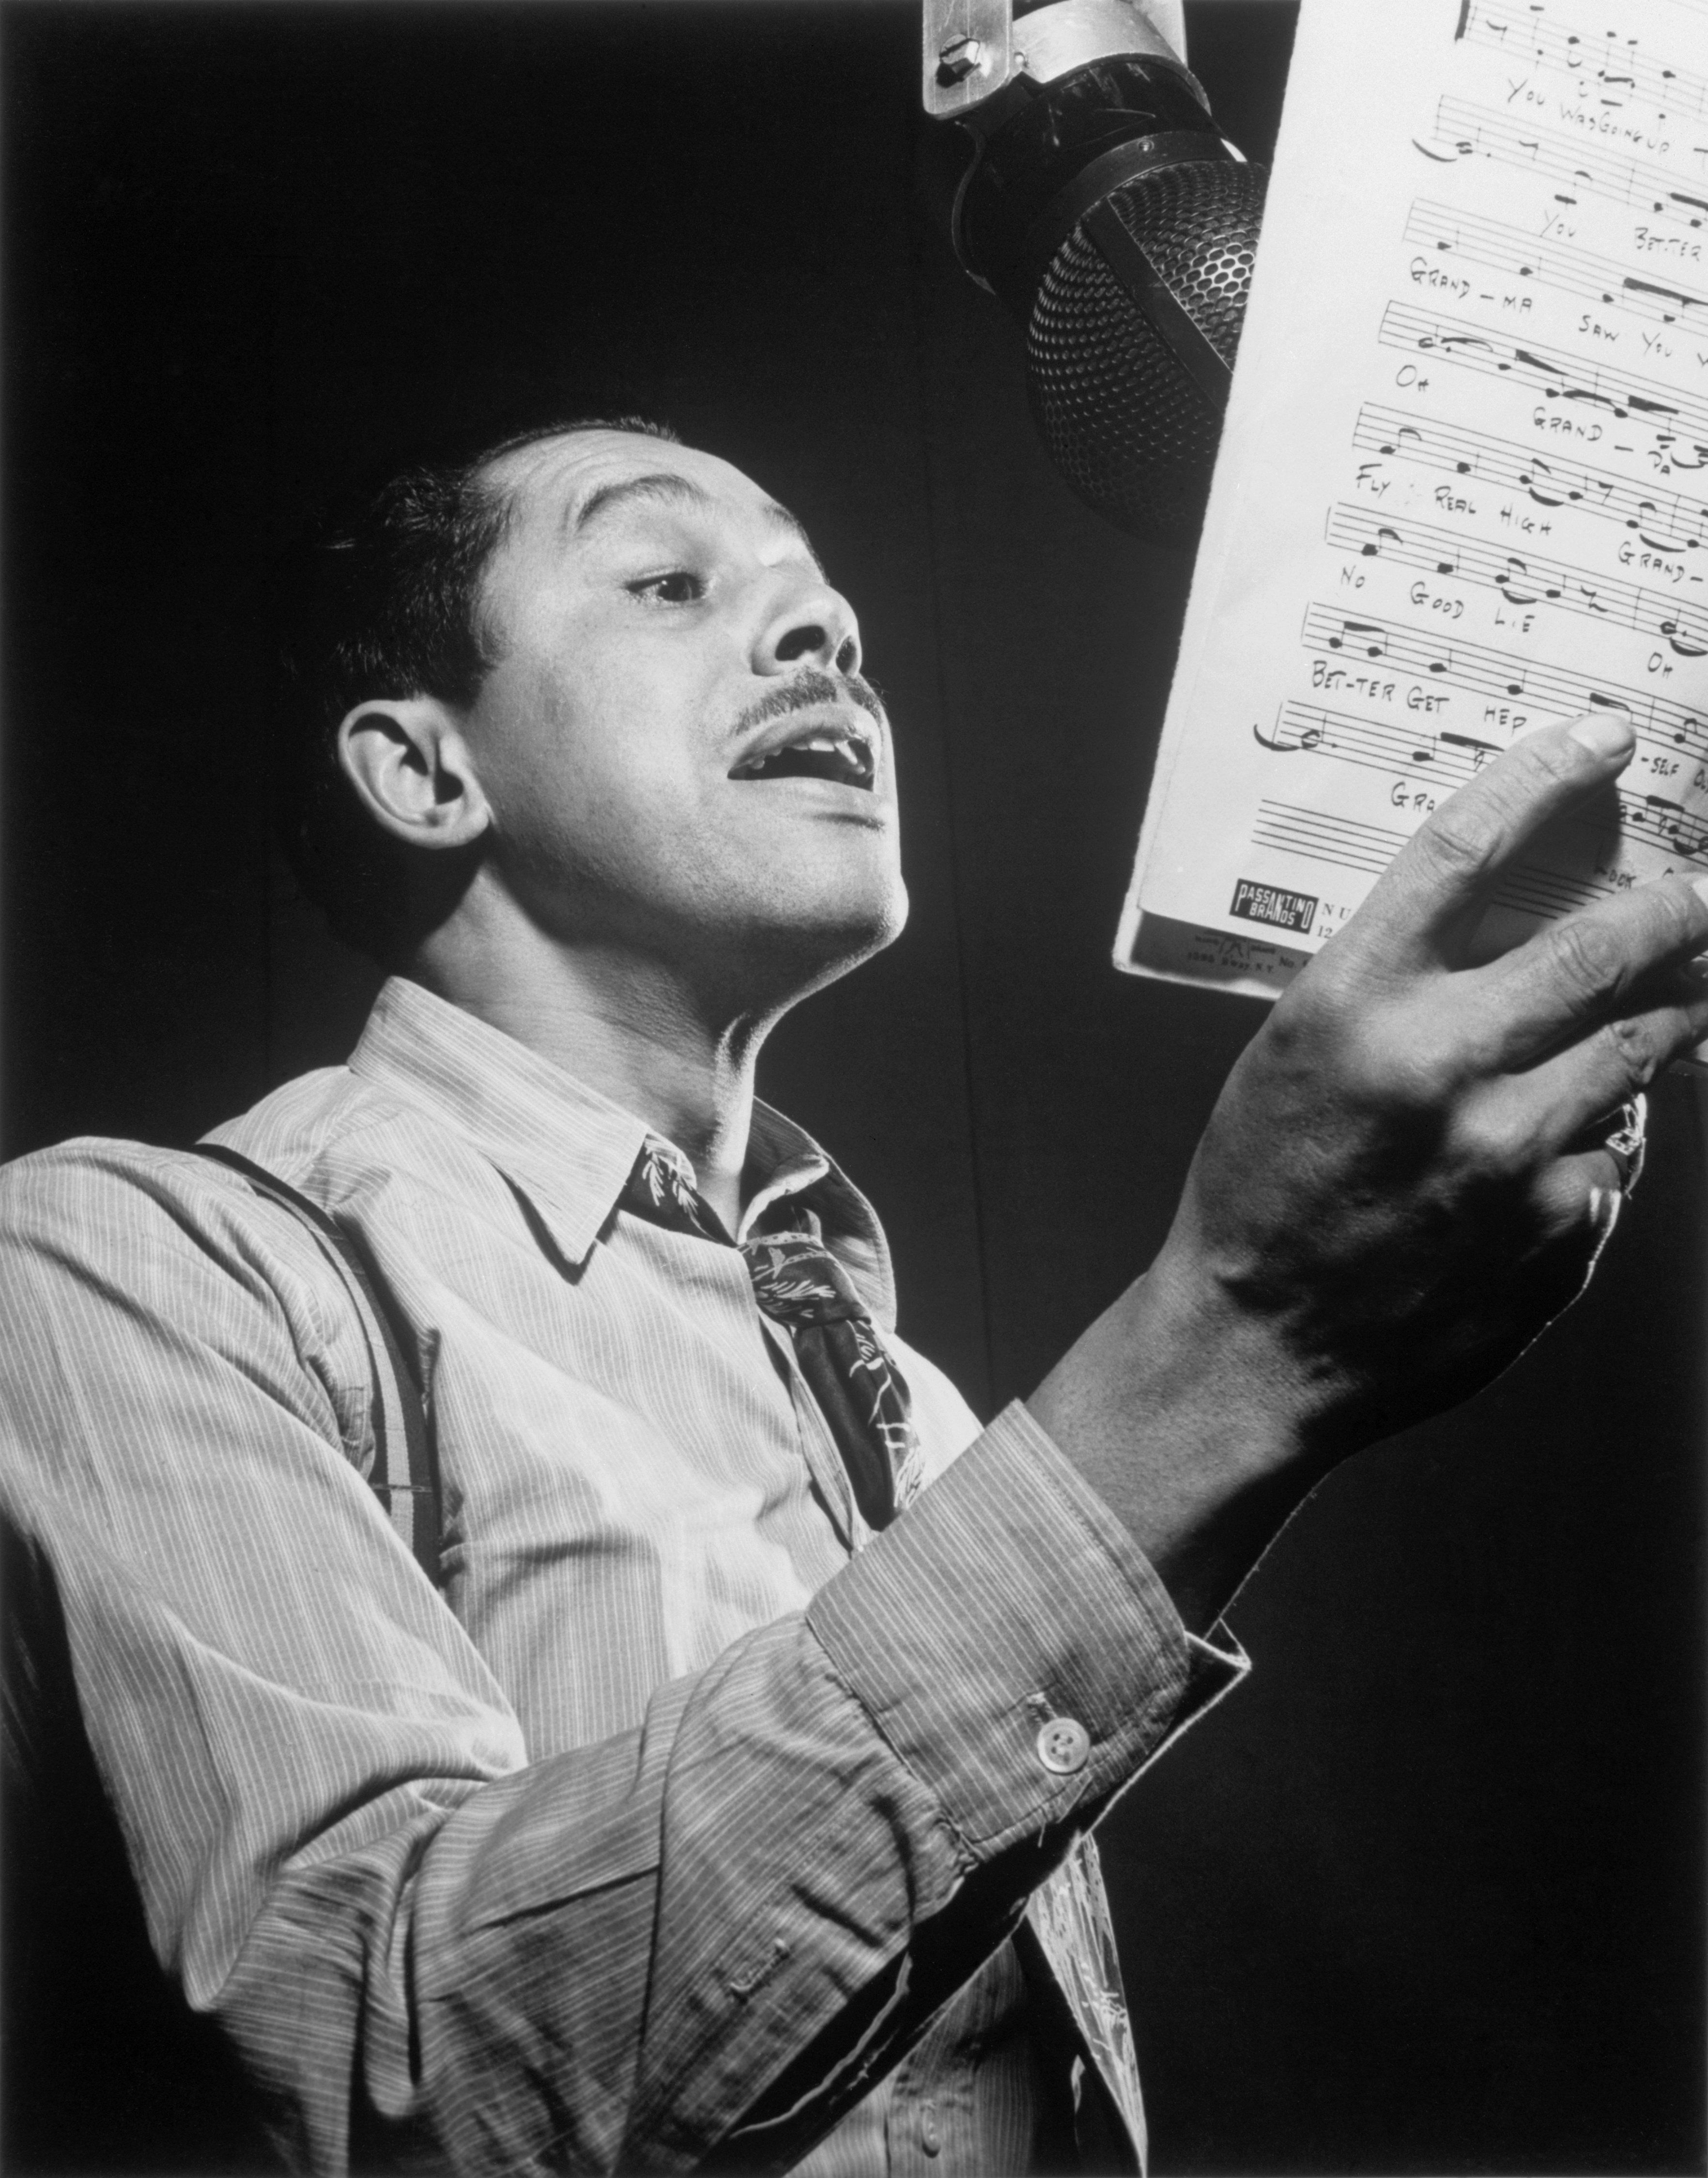 File:CAB CALLOWAY Gottlieb.jpg - Wikimedia Commons